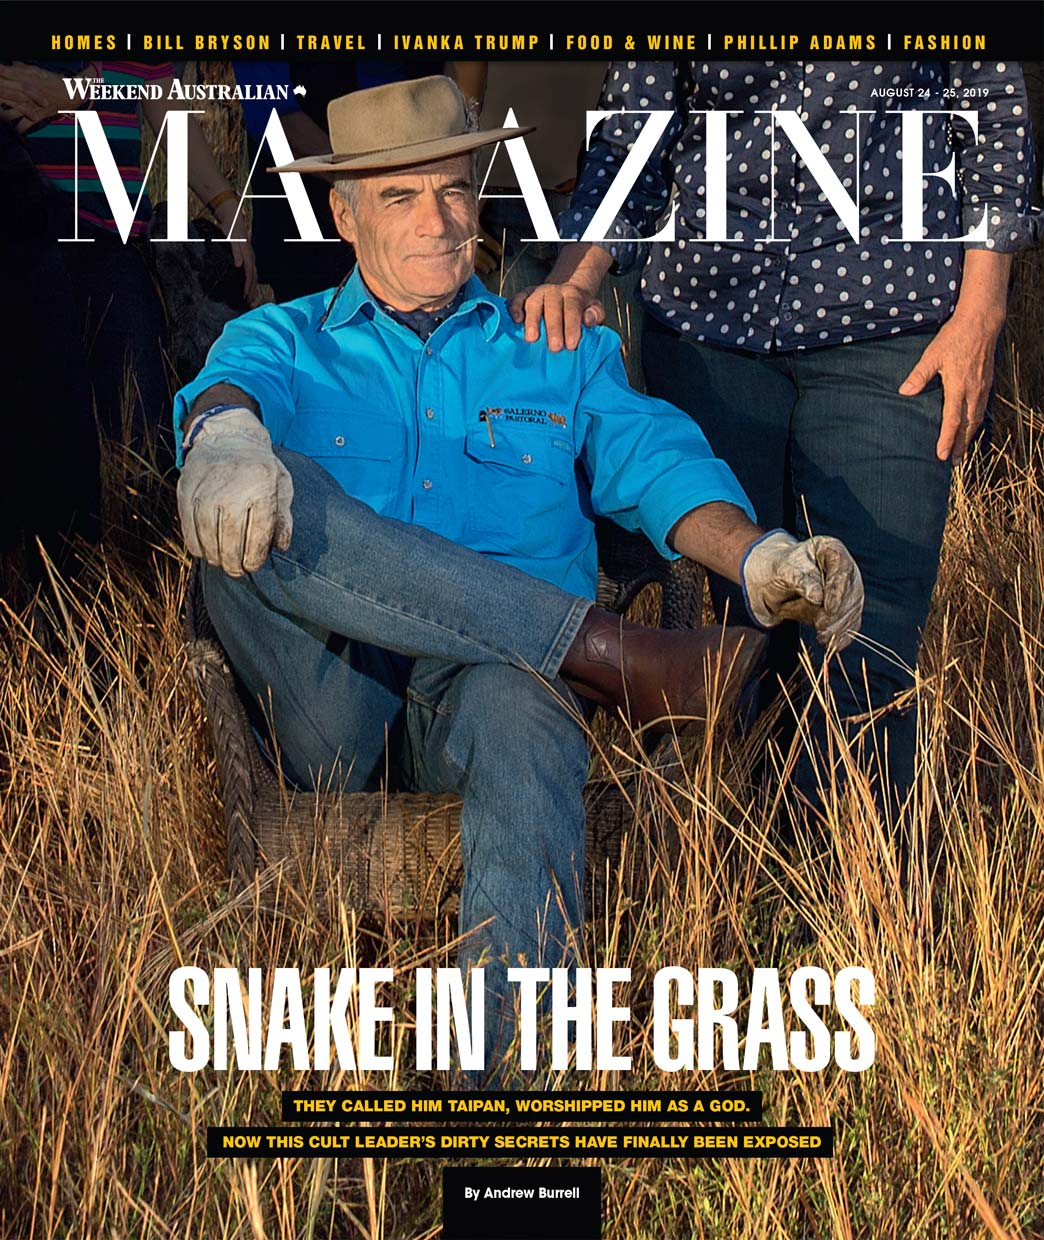 Wkd-Aust-Mag_King-Snake_James-Salerno-feature_cover_story_August19